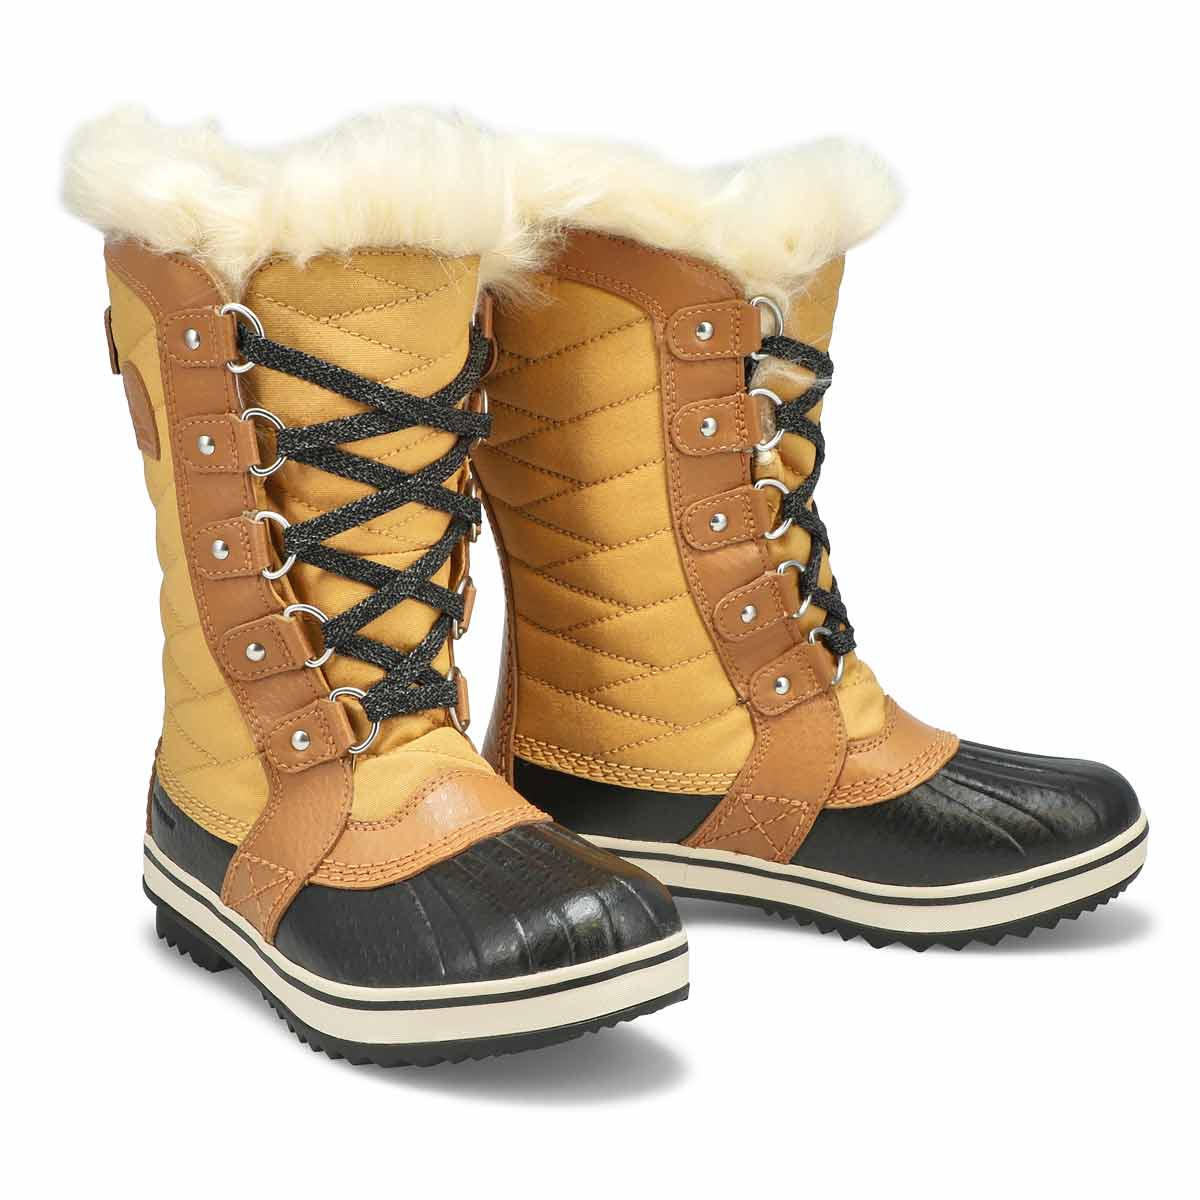 Grls Tofino II curry wtpf snow boot